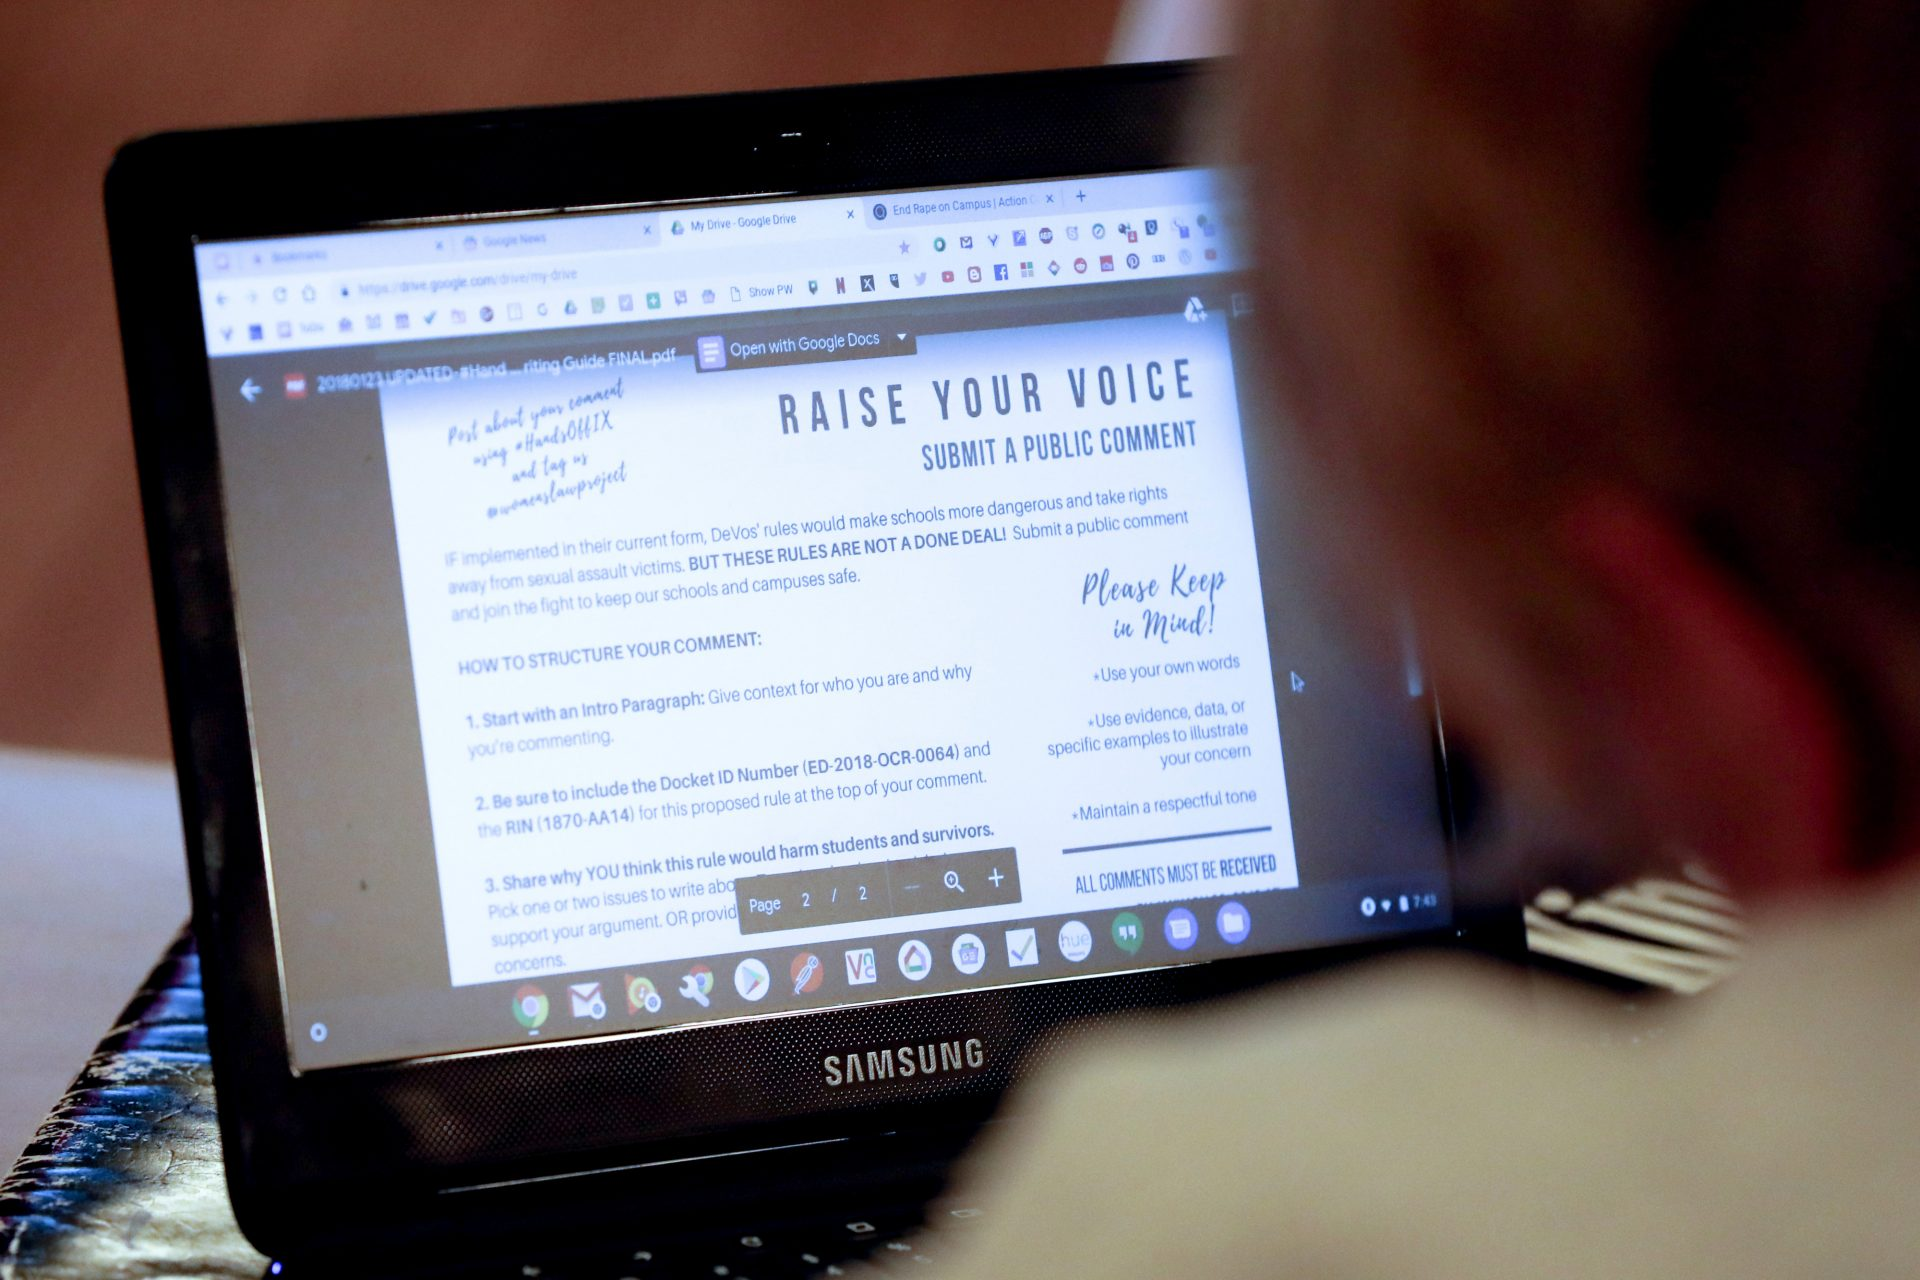 A woman attending the monthly meeting of the southwest Pennsylvania chapter of the National Organization for Women, looks over information as to how people can register their thoughts on the proposed changes to the implementation of Title IX as it pertains to the sexual abuse regulations in education in Monaca, Pa. on Wednesday, Jan. 23, 2019.